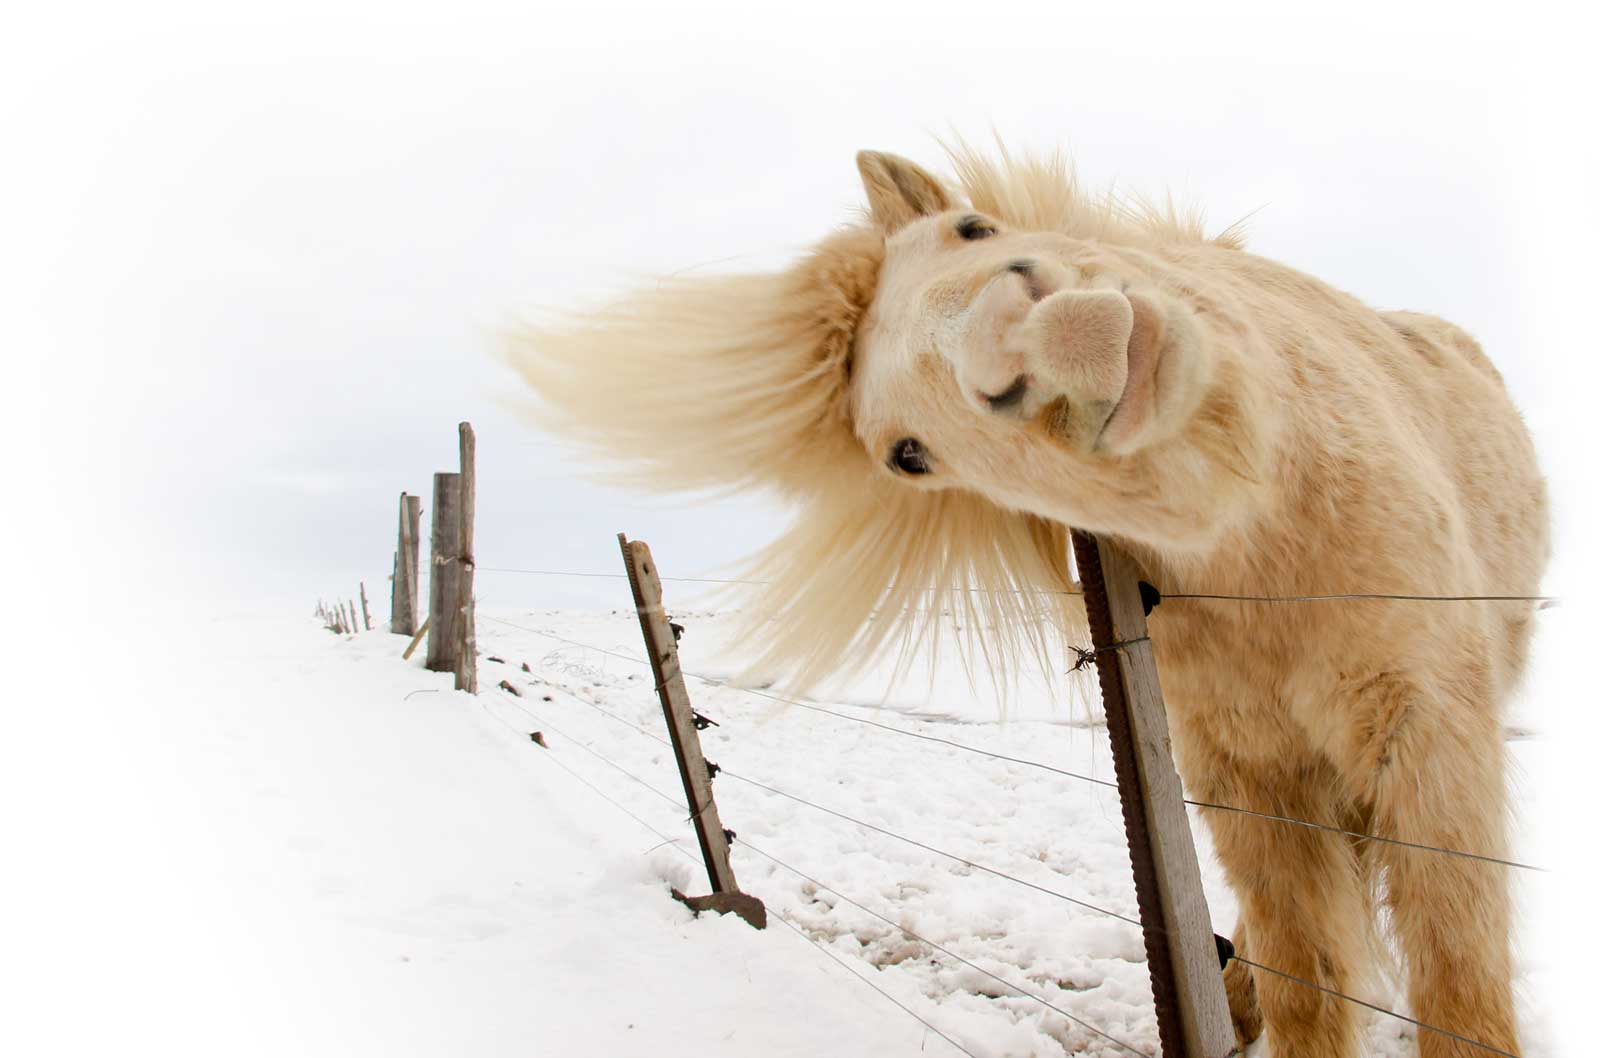 horse looking over fence in the snow